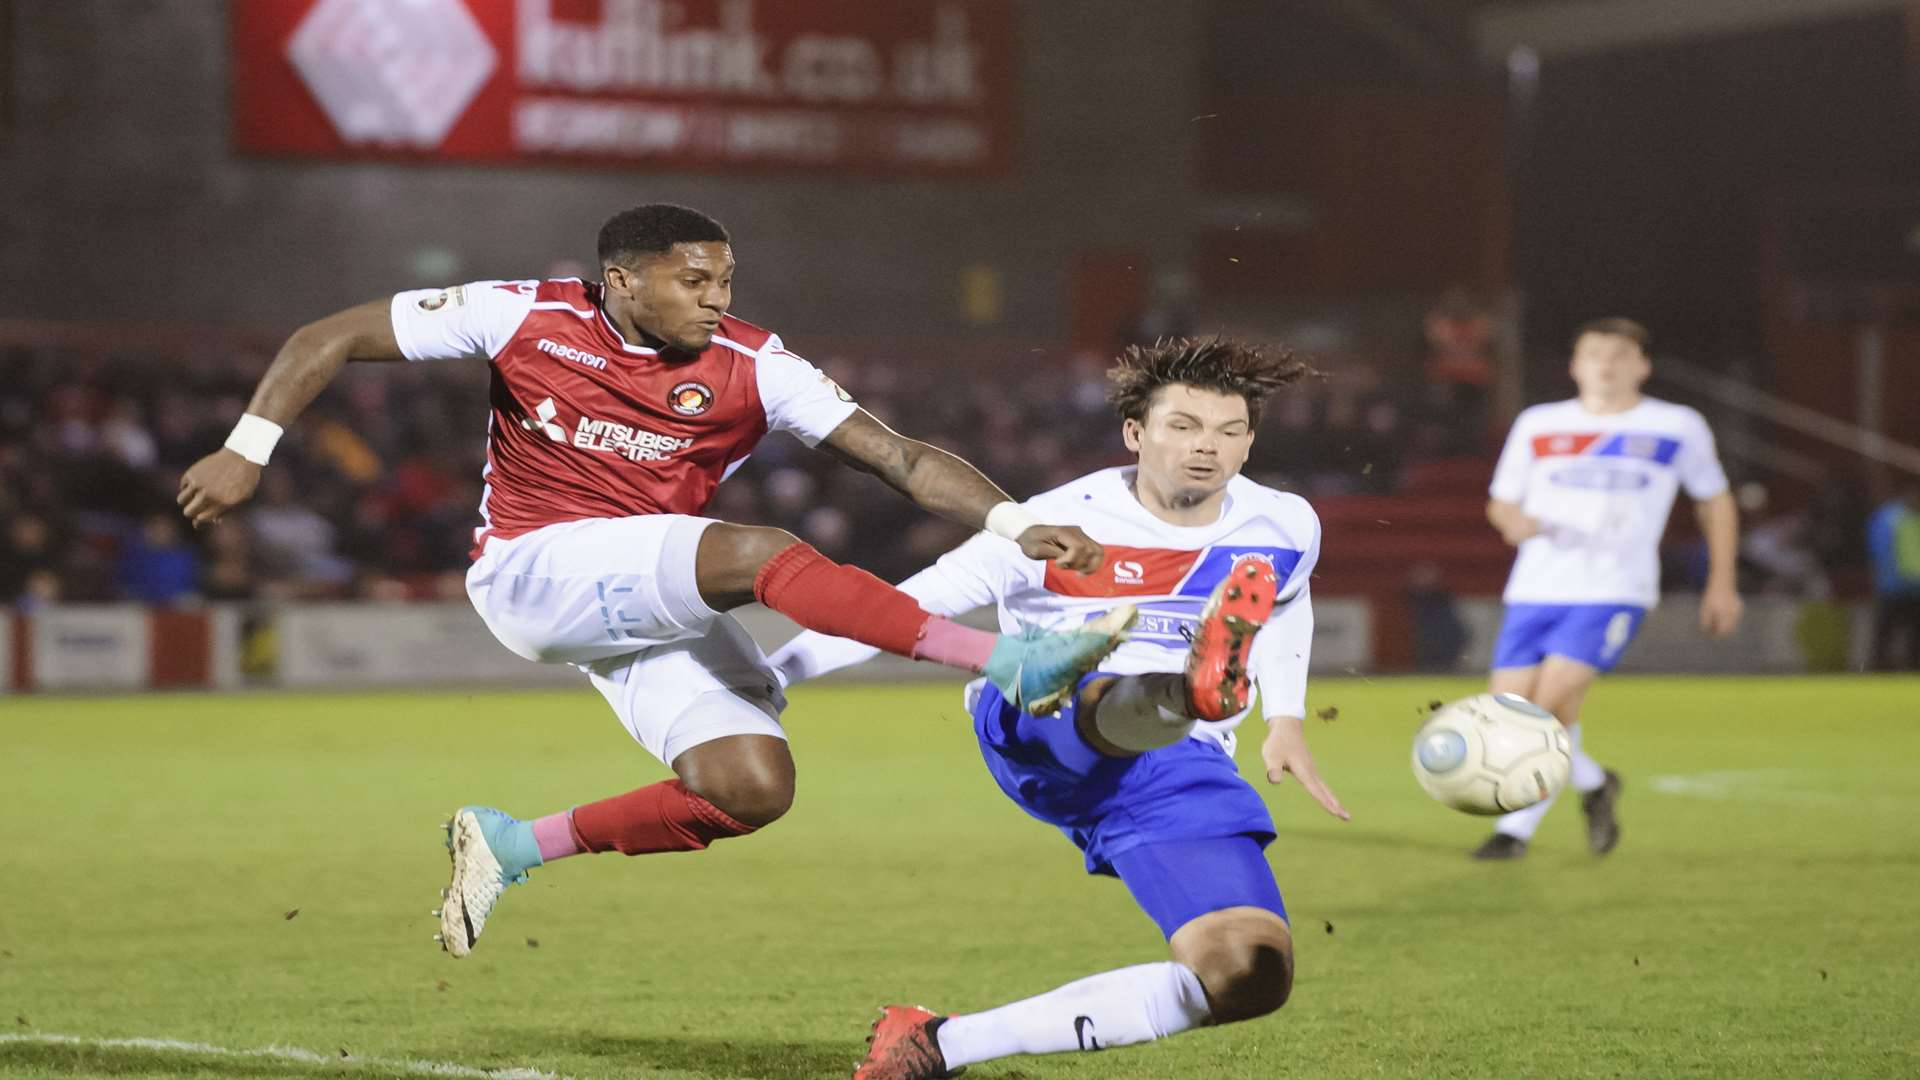 Bradley Bubb stretches for the ball against Dagenham Picture: Andy Payton